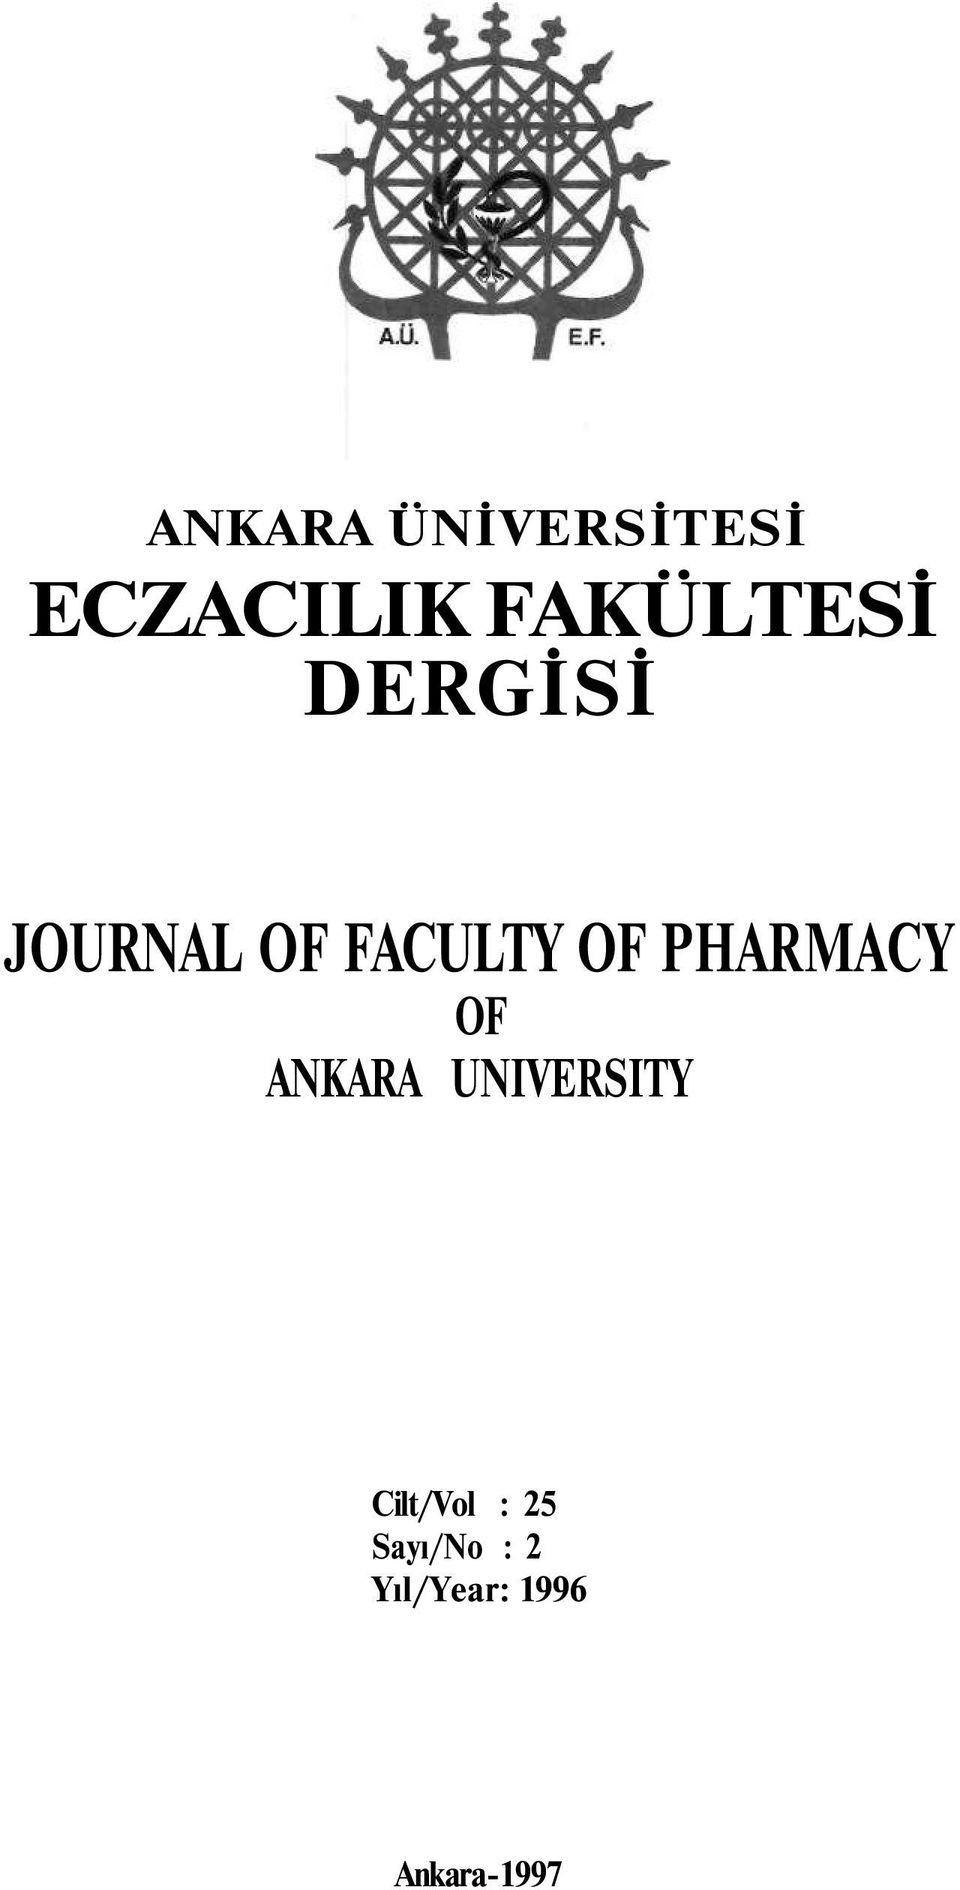 OF PHARMACY OF ANKARA UNIVERSITY